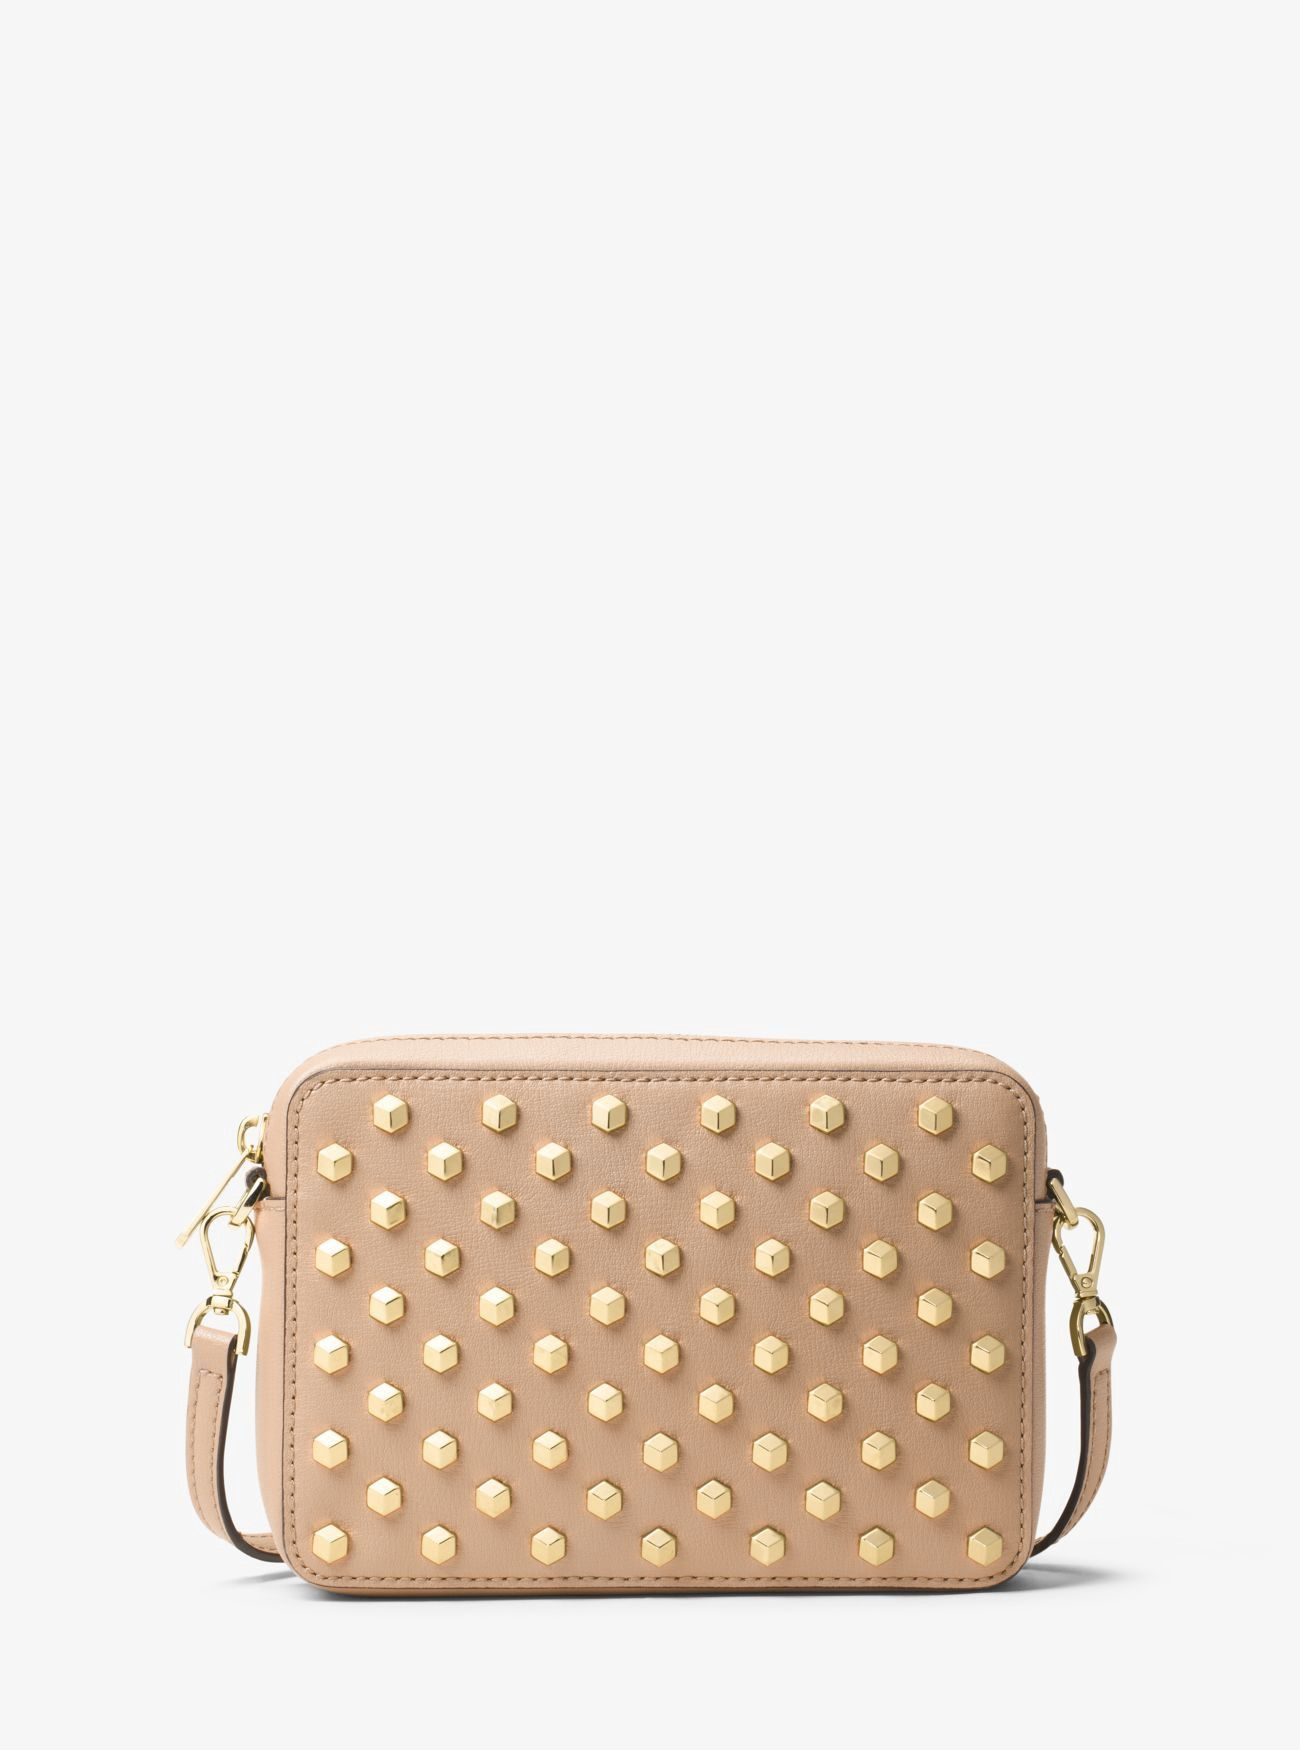 767089abaee0 MICHAEL KORS Scout Studded Leather Crossbody.  michaelkors  bags  shoulder  bags  leather  polyester  crossbody  lining